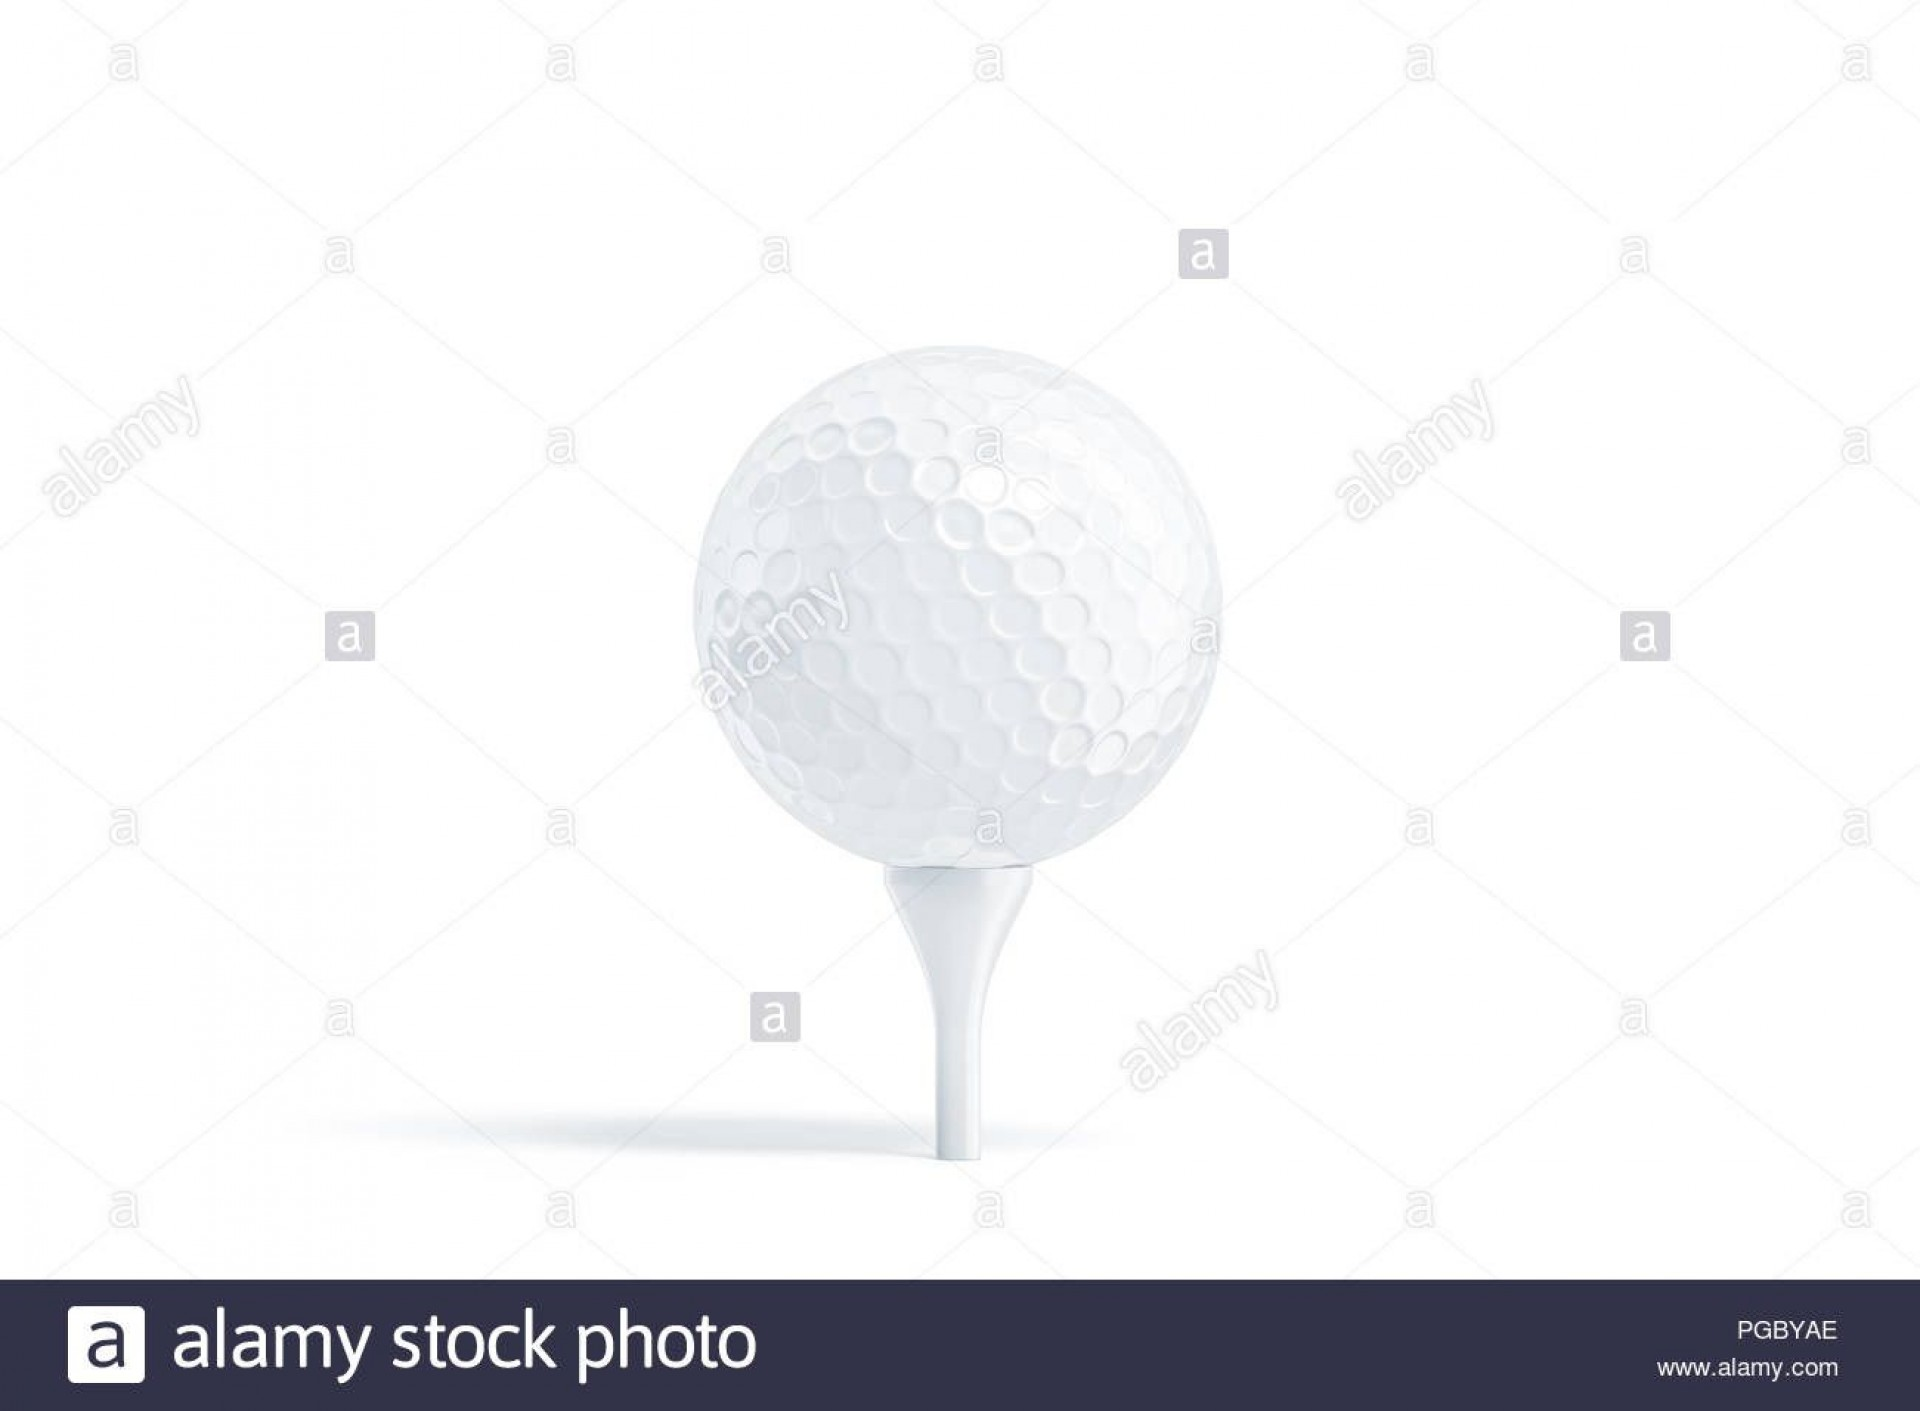 003 Phenomenal Golf Tee Game Template High Resolution  Triangle1920